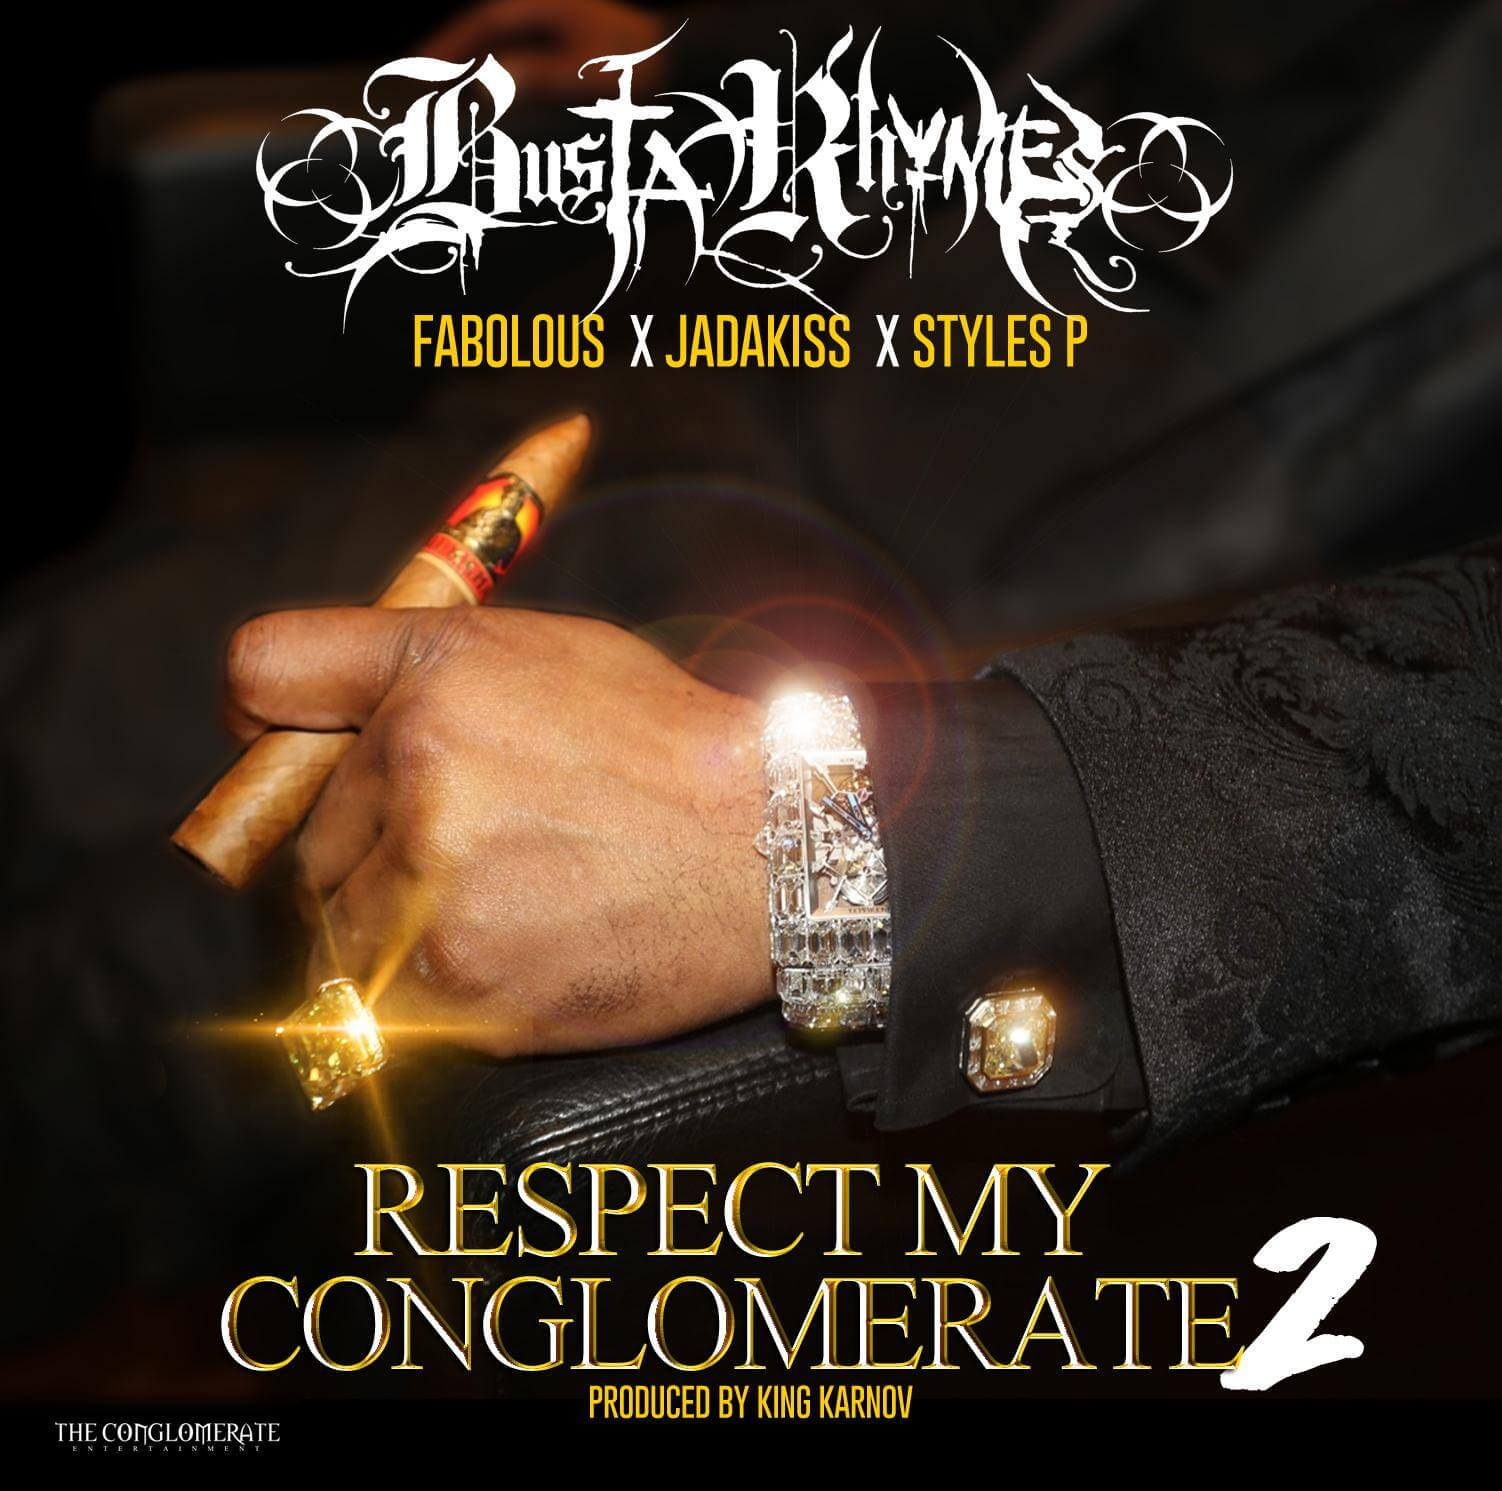 Busta Rhymes - Respect My Conglomerate 2 Feat. Fabolous, Jadakiss & Styles P